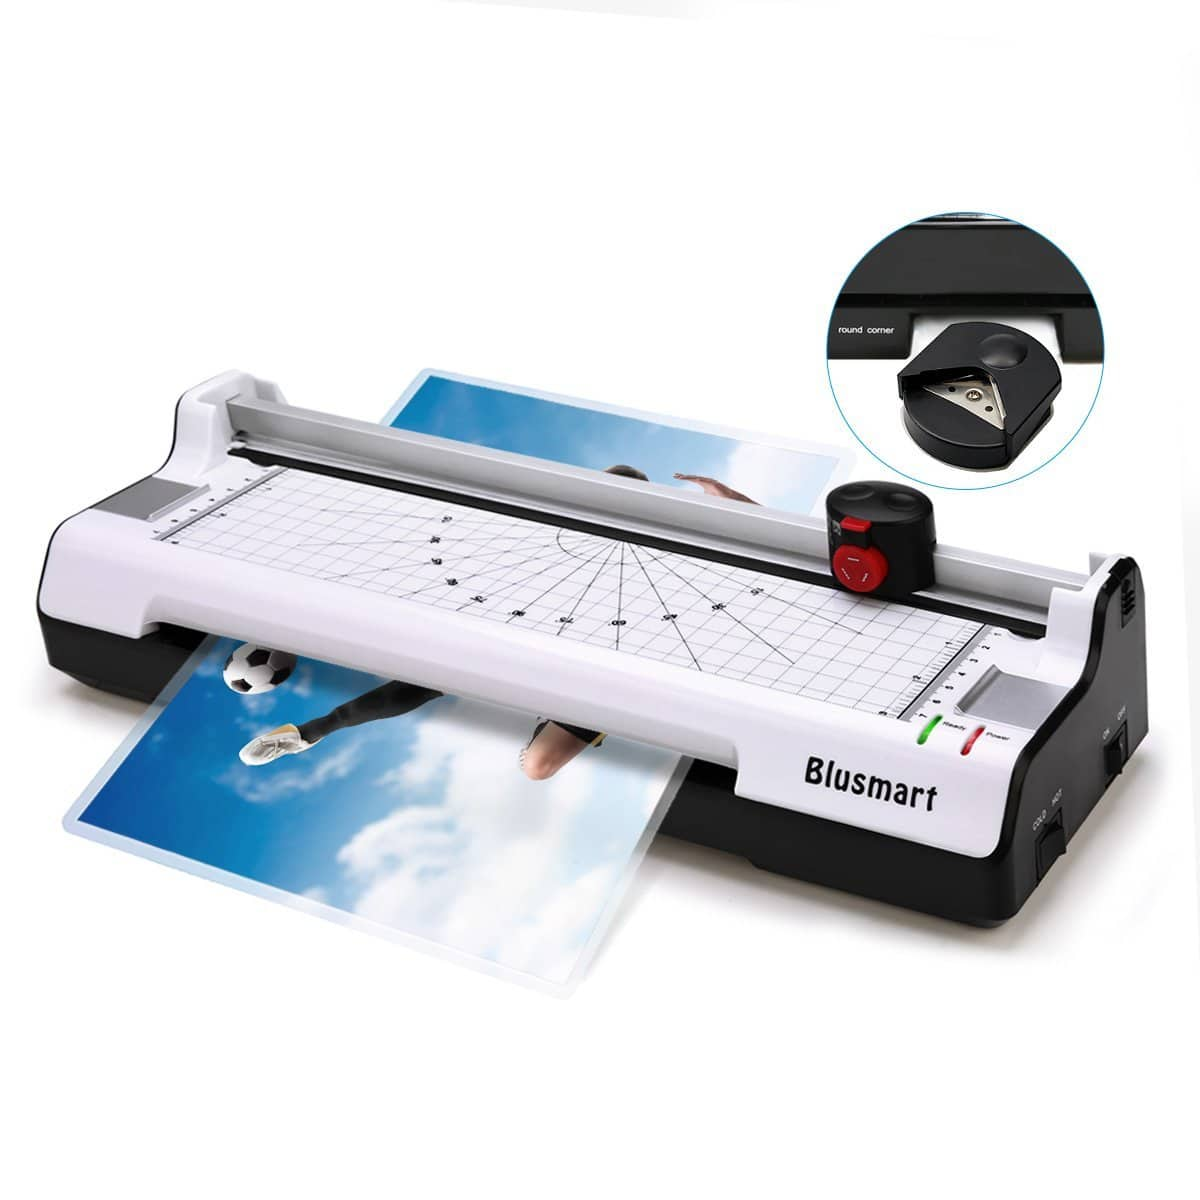 Amazon: Blusmart 3-in-1 Laminator Only $32 Shipped